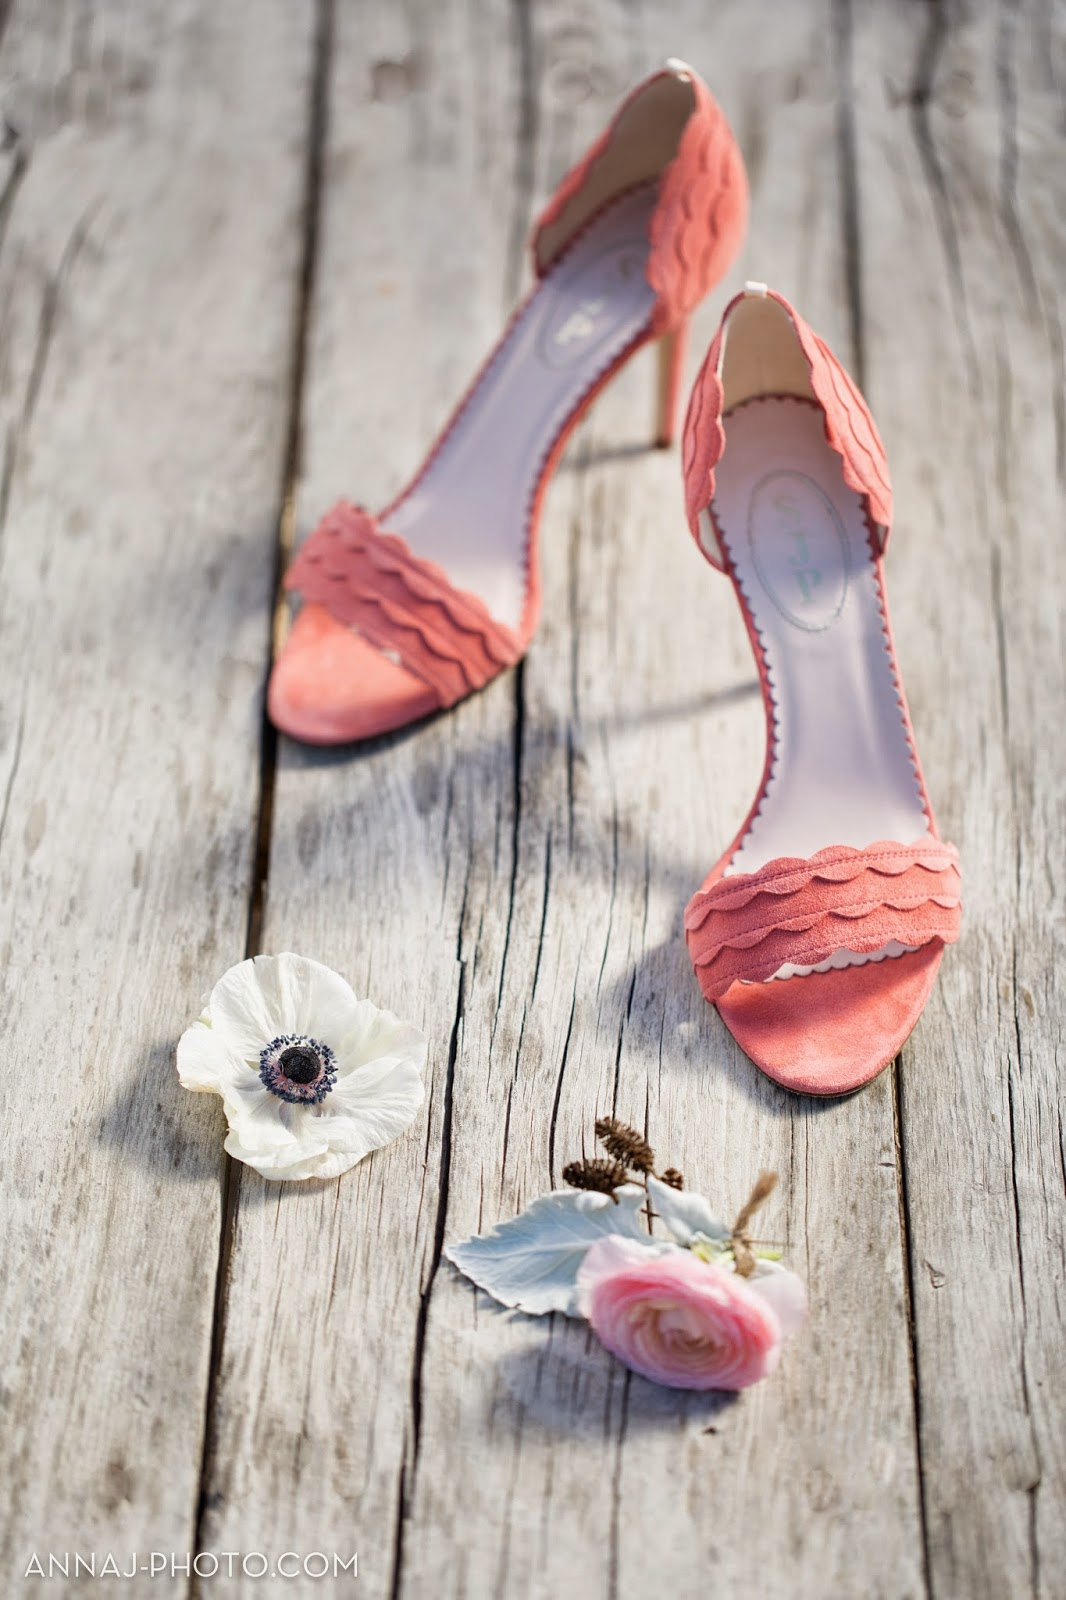 71edf-sogno2bdel2bfiore2bshoot2bwatermarked-shoes2band2bbouqet-0004.jpg